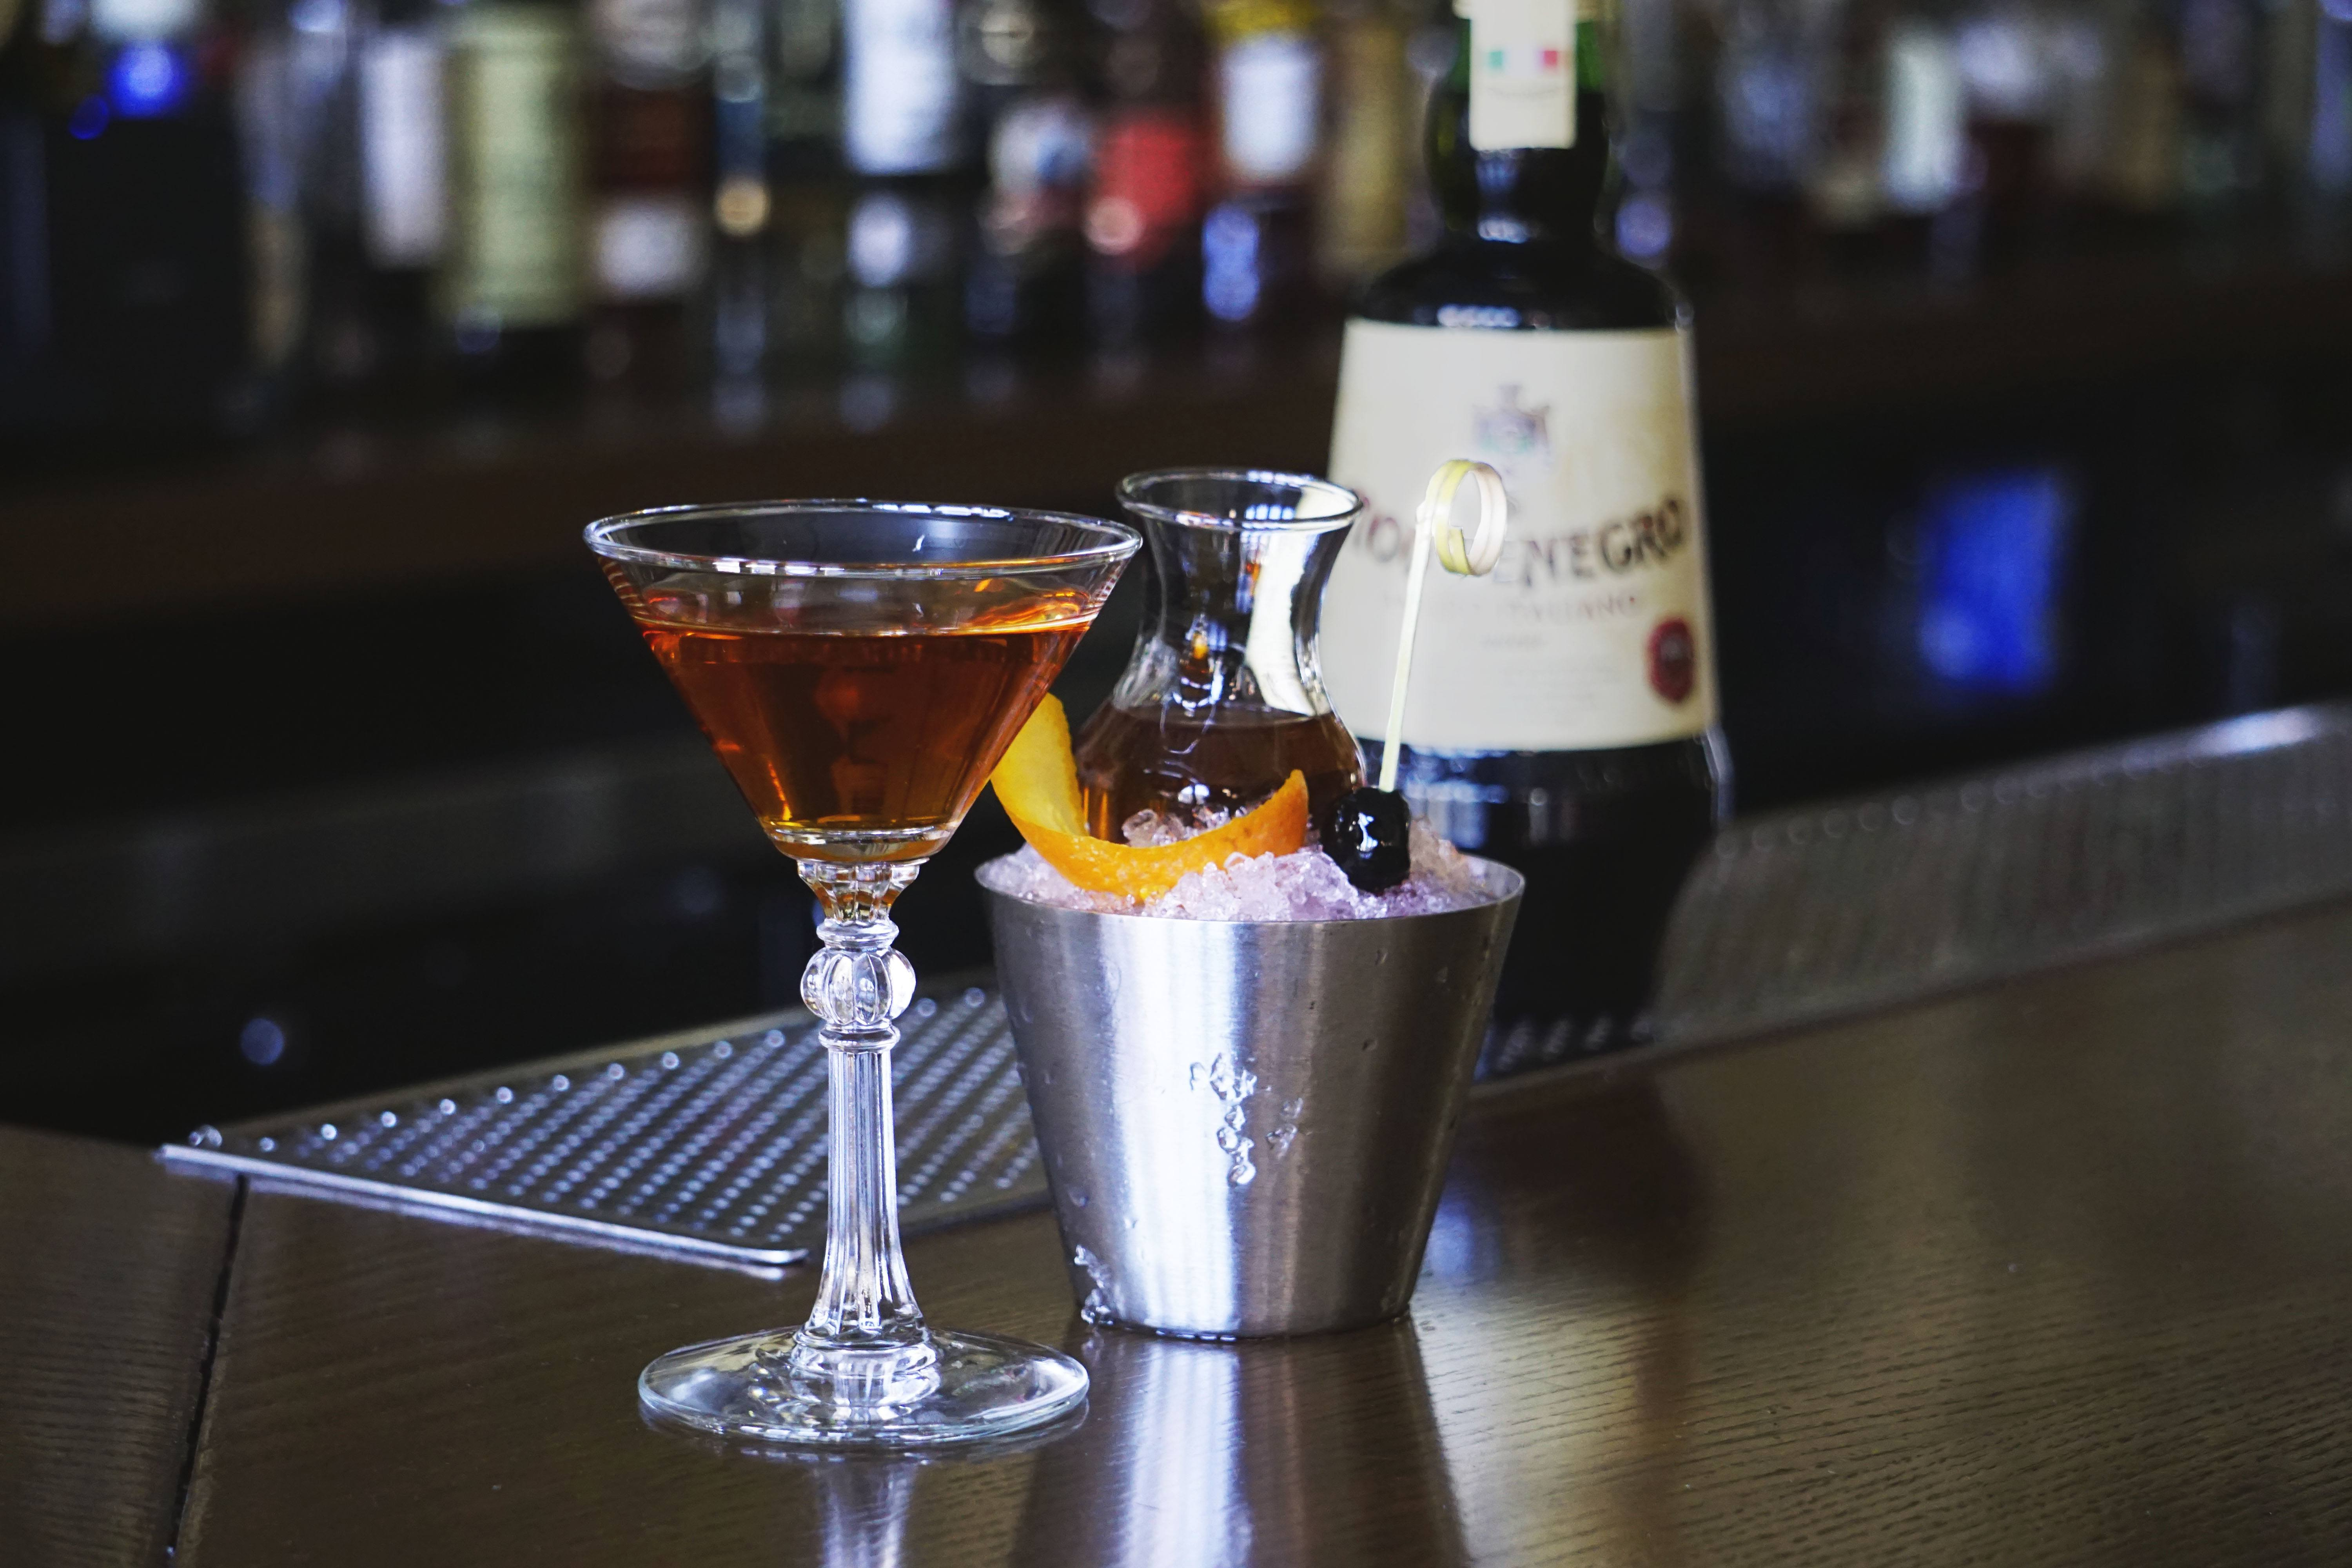 The Queen Martini with Bottle